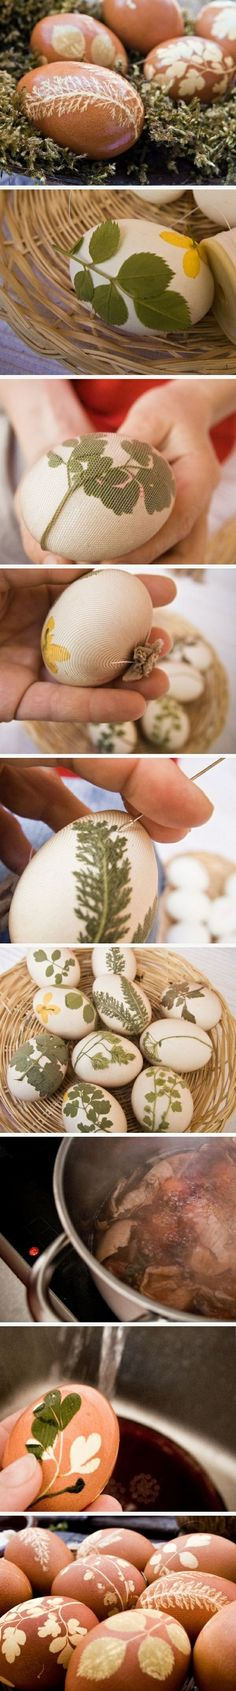 Serbian Easter | Easter eggs....this is how we do it :)